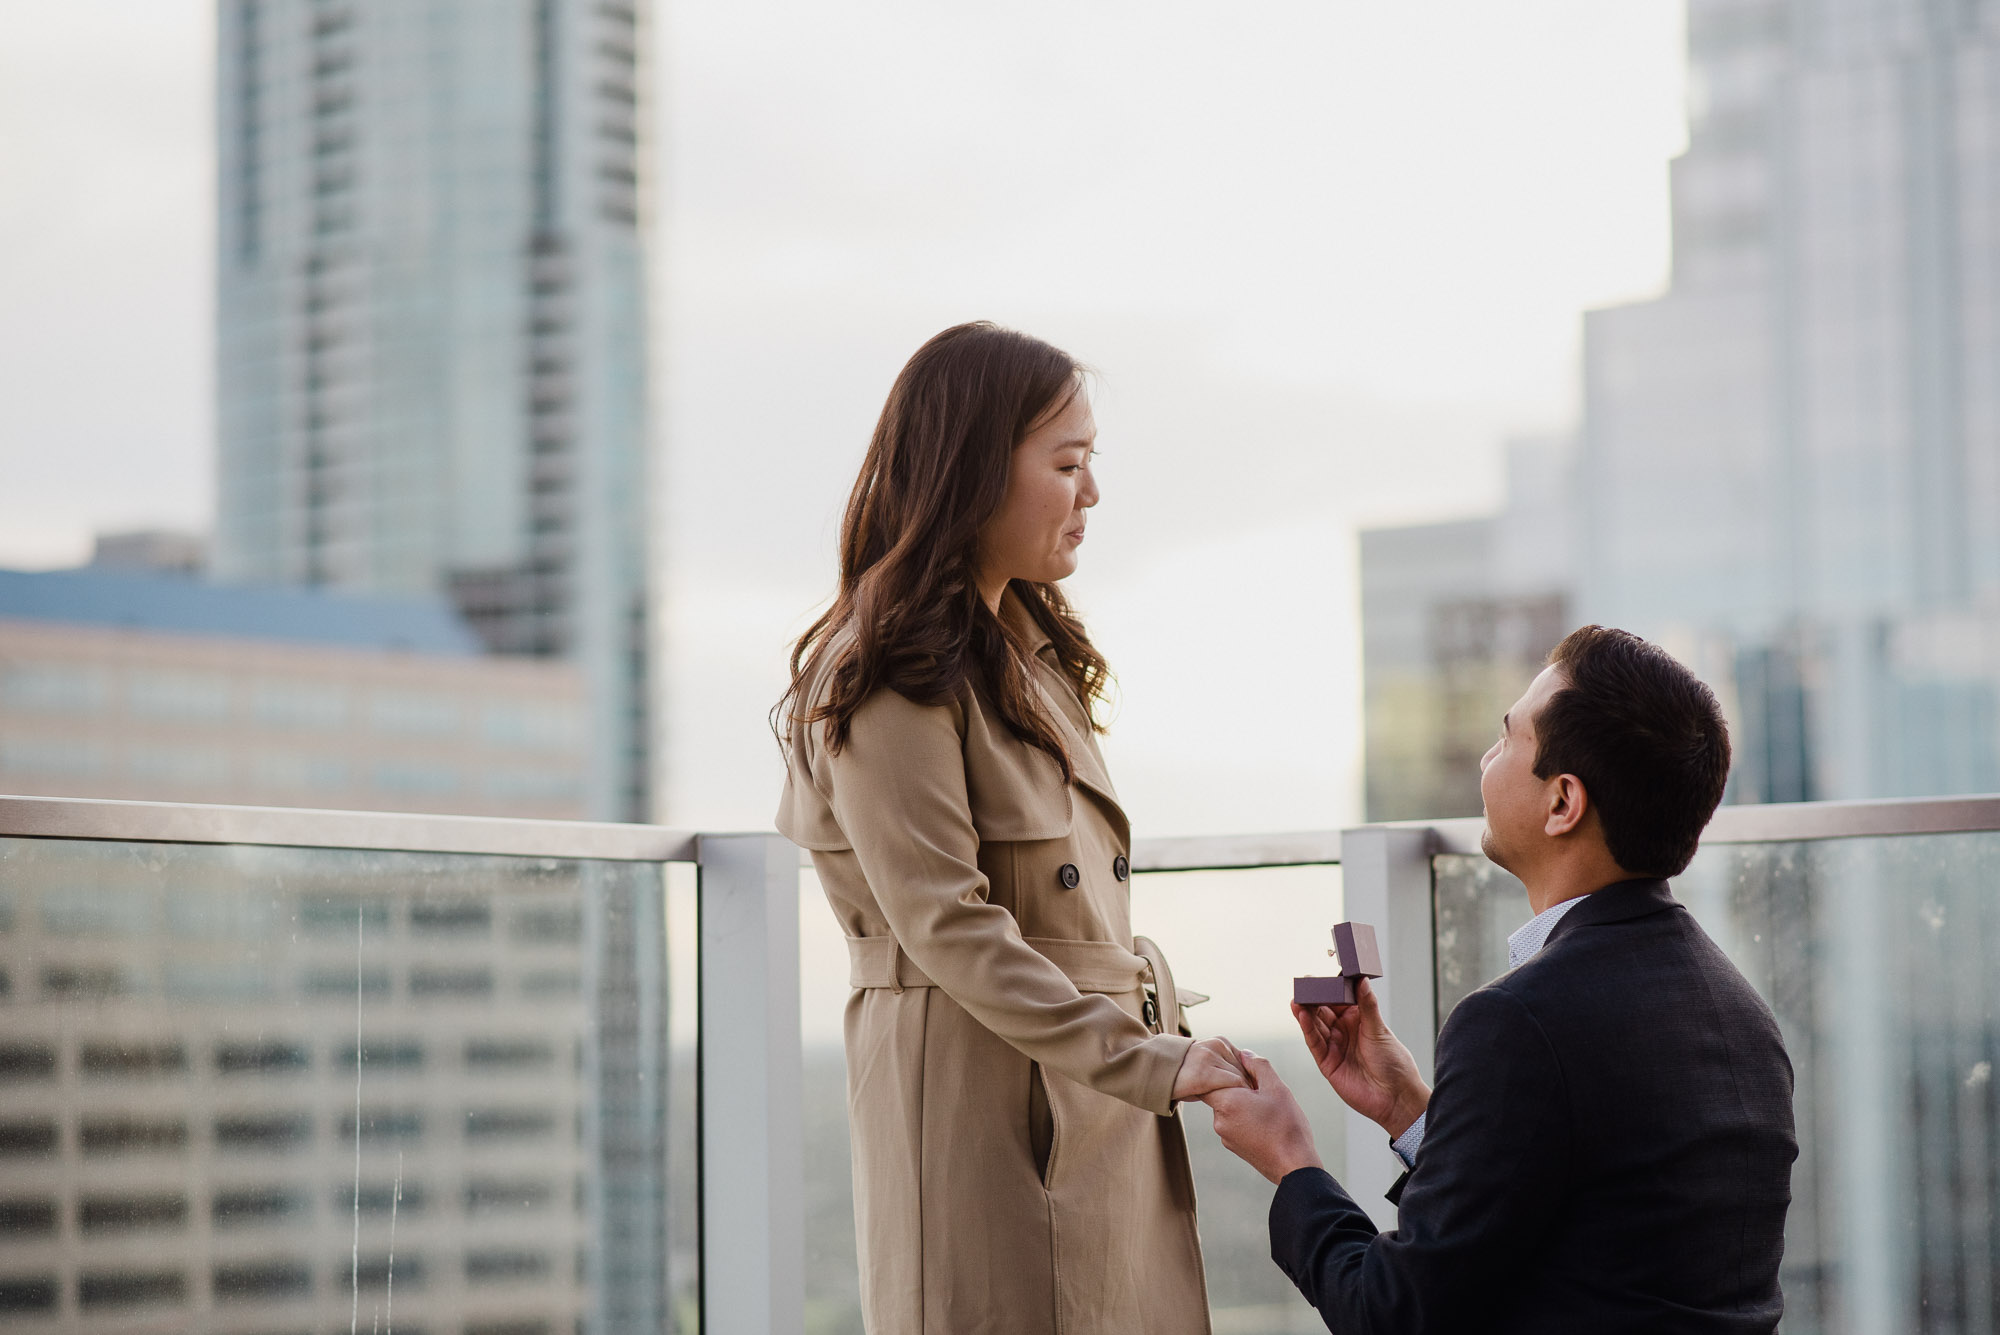 winter proposal ideas in austin texas, downtown proposal photography